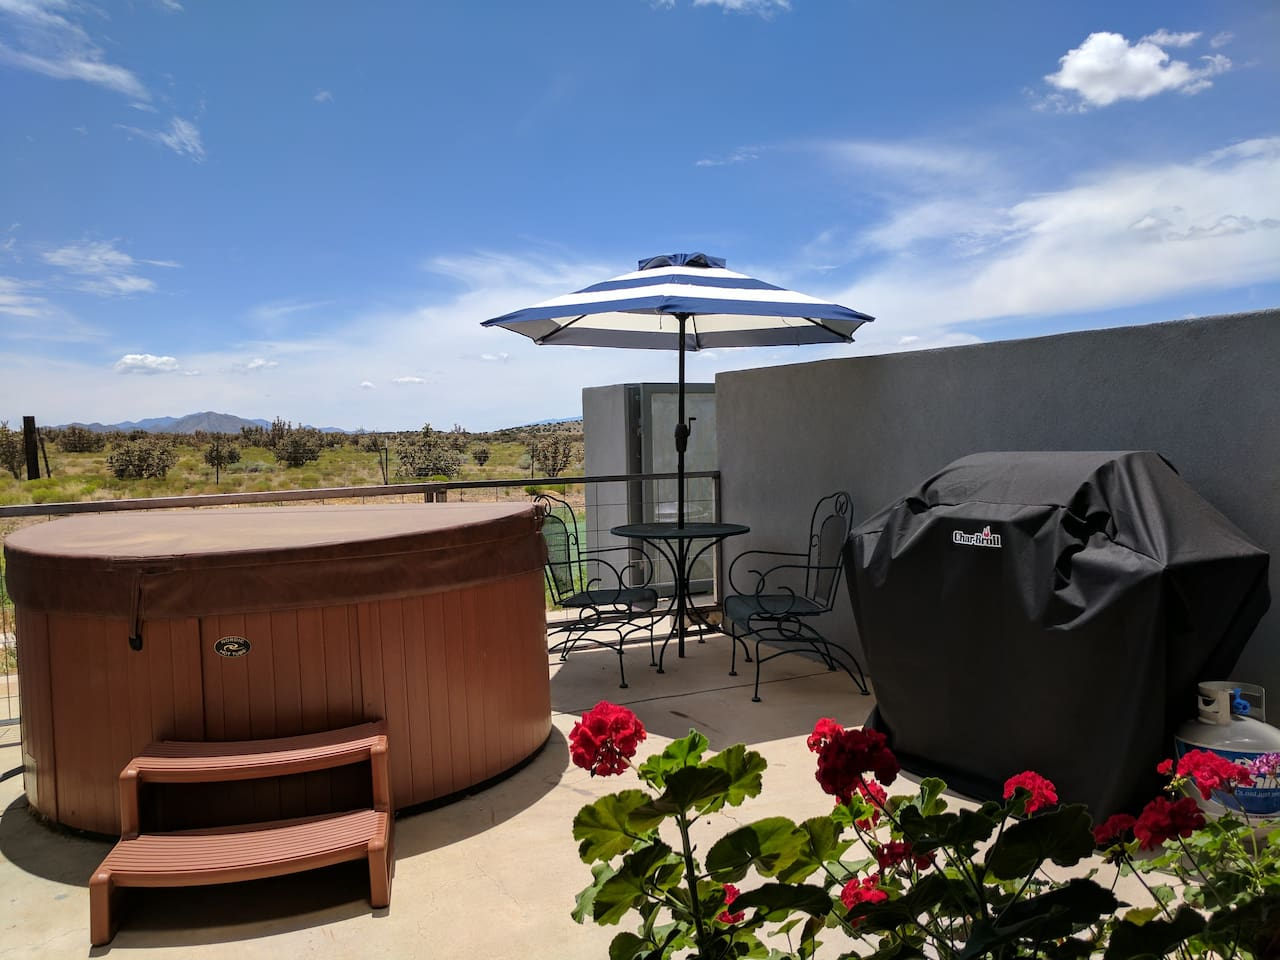 Private Patio:  Bask under the true blue New Mexico sky -- or night sky studded with stars and the Milky Way -- on your patio with spa, grill, bistro table, chairs and view to open land (our friendly dog is fenced off from all your spaces).